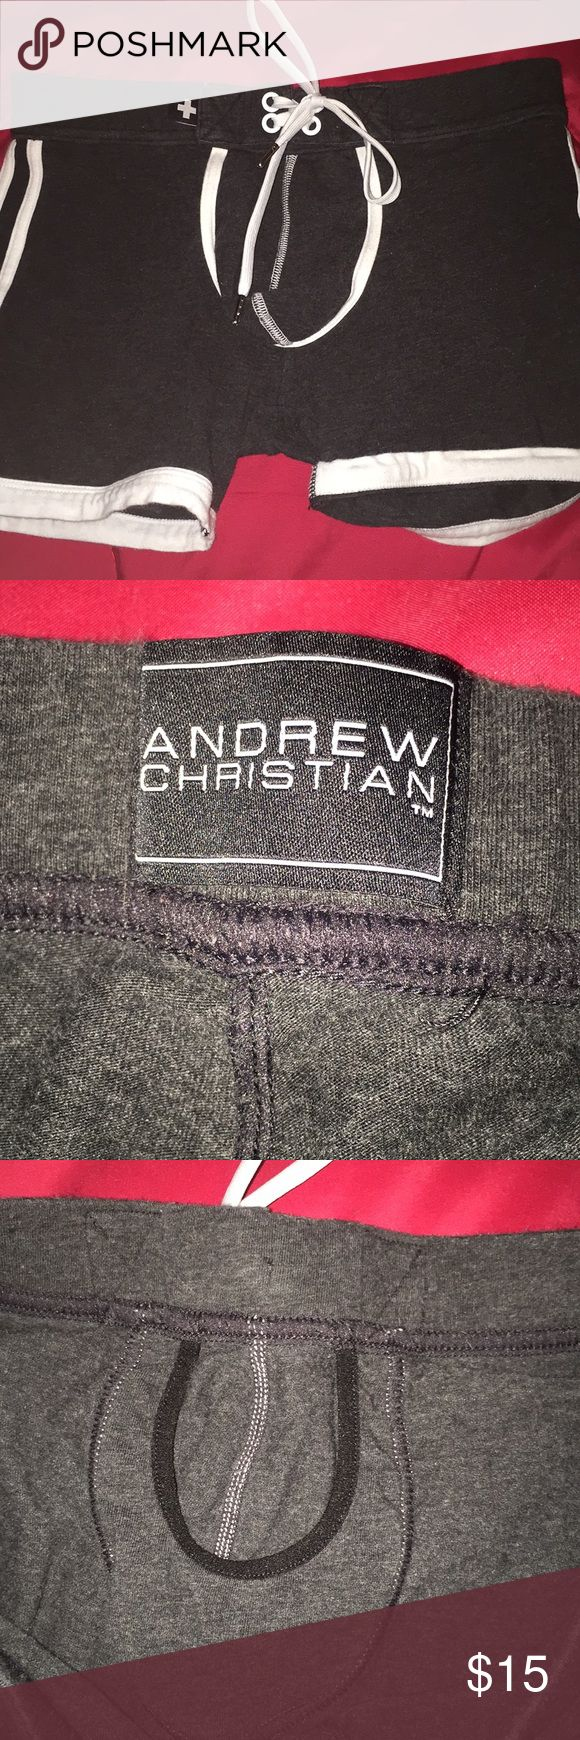 Andrew Christian Shorts Men's Andrew Christian shorts, size small, in great condition! Andrew Christian Underwear & Socks Boxer Briefs